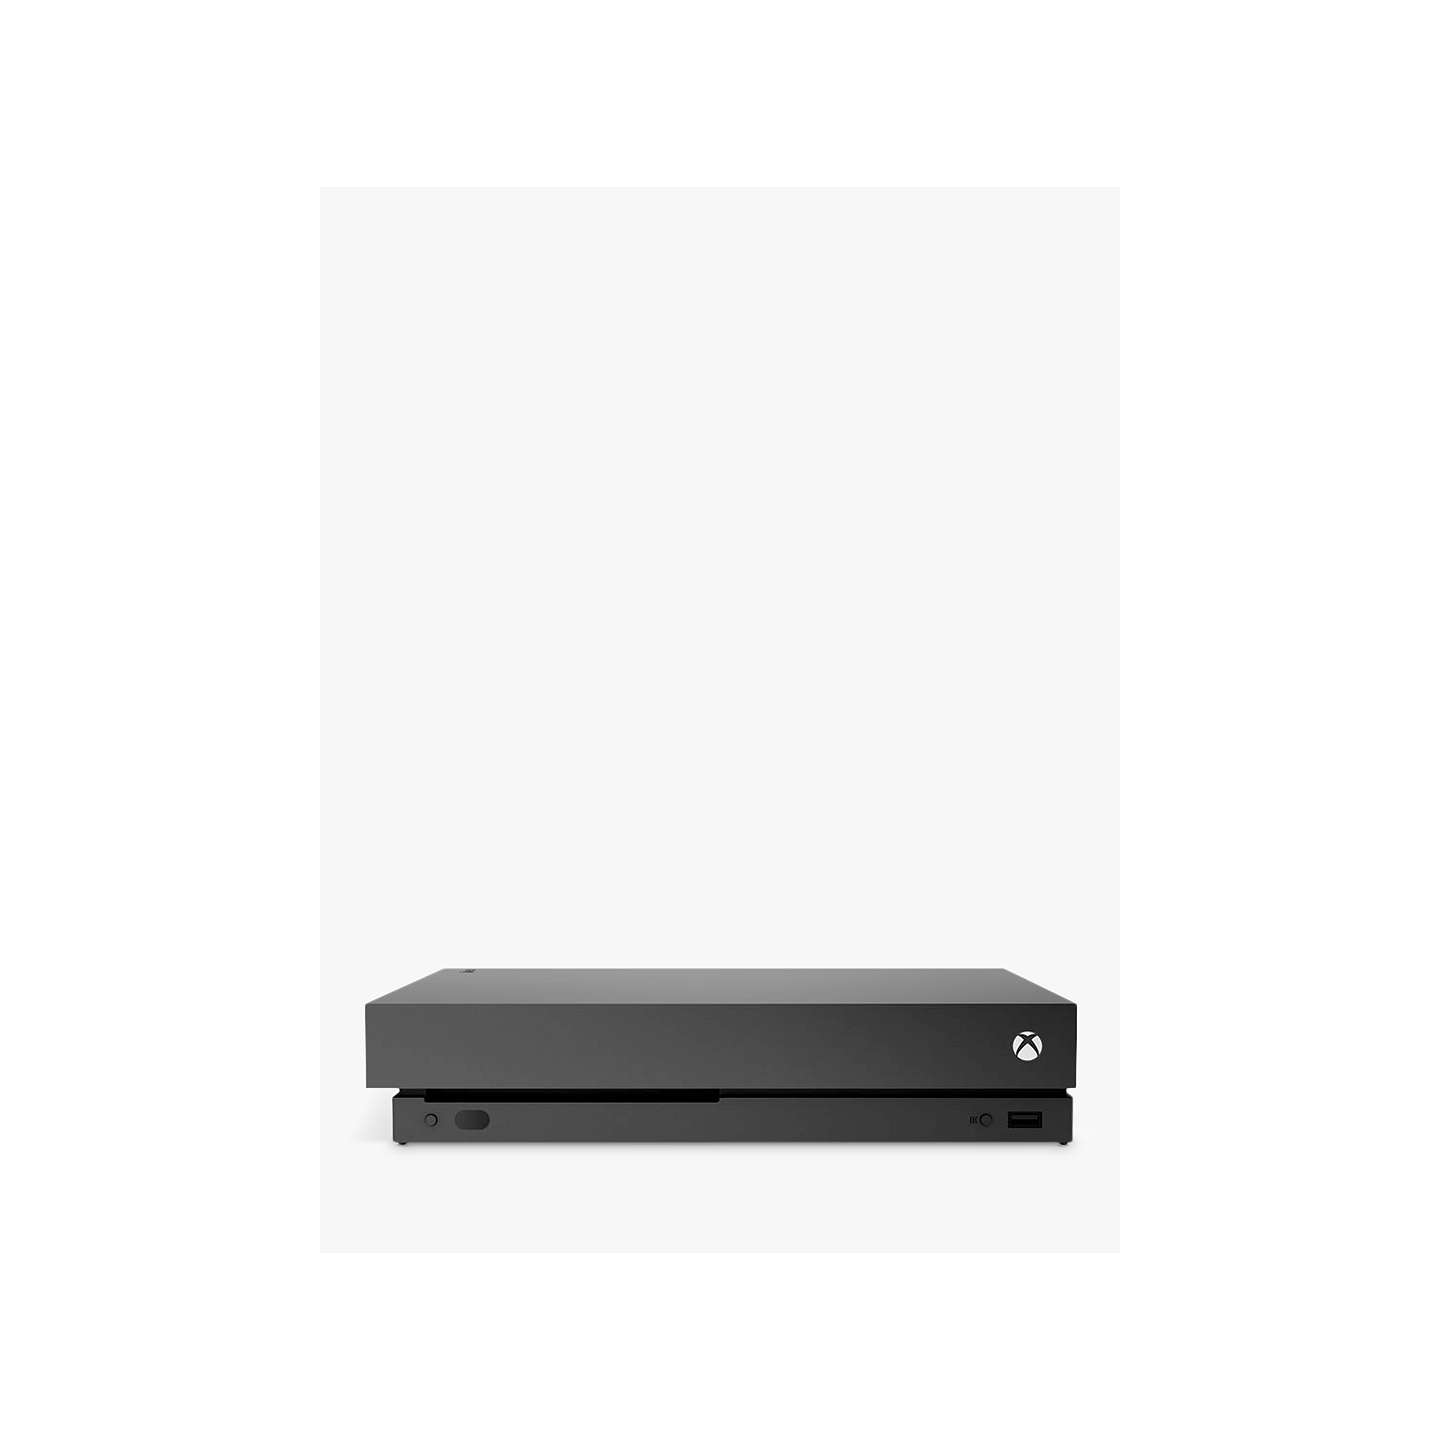 BuyMicrosoft Xbox One X Console, 1TB, with Wireless Controller, Black Online at johnlewis.com